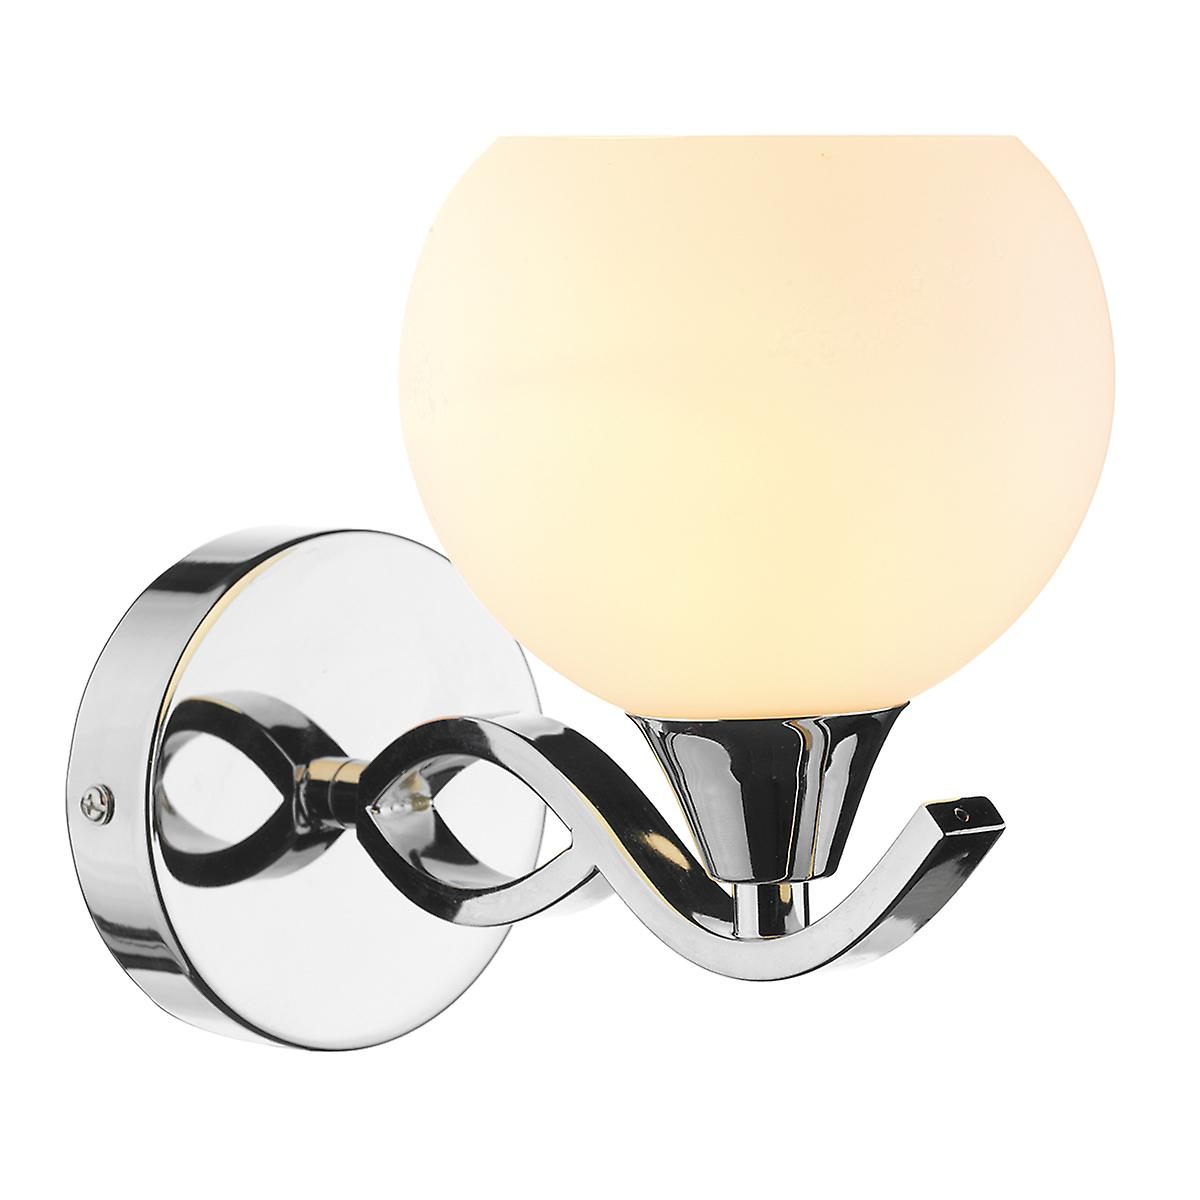 Dar ARU0750 Aruba Switched Wall Light With Opal Glass - Double Insulated